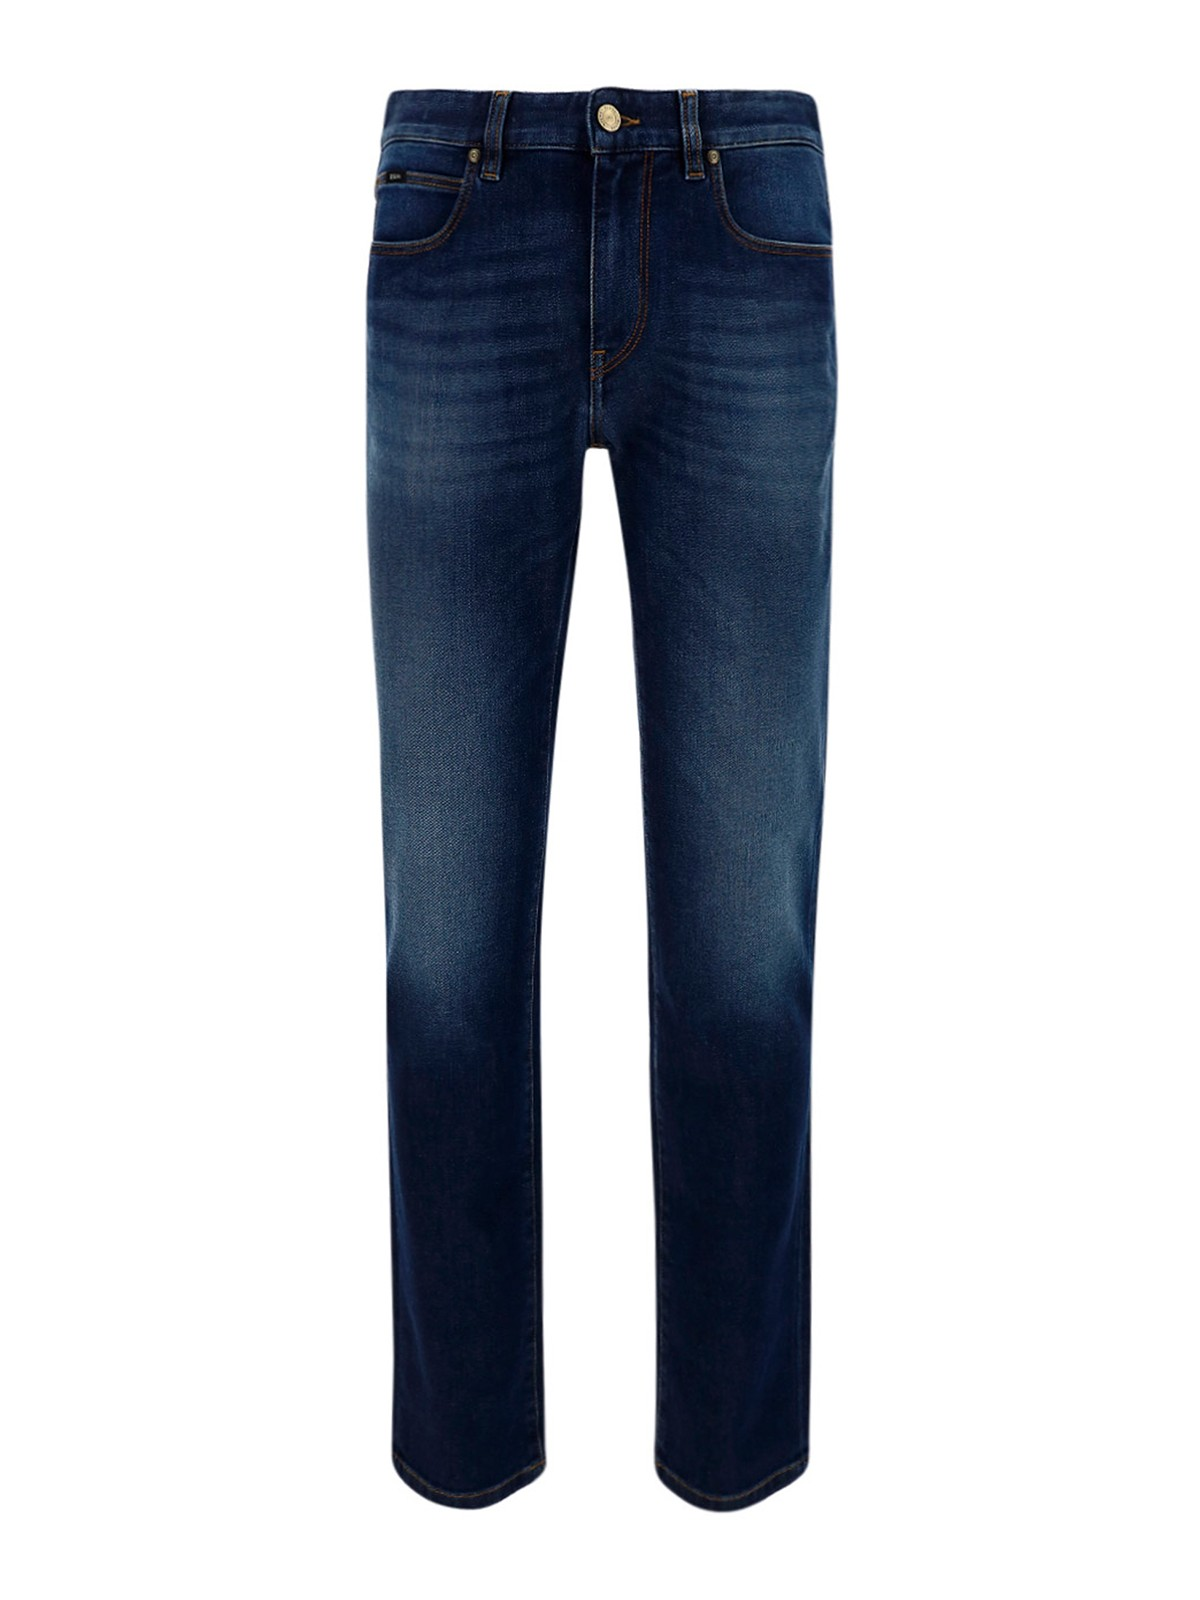 Z Zegna STRETCH STRAIGHT-LEG JEANS